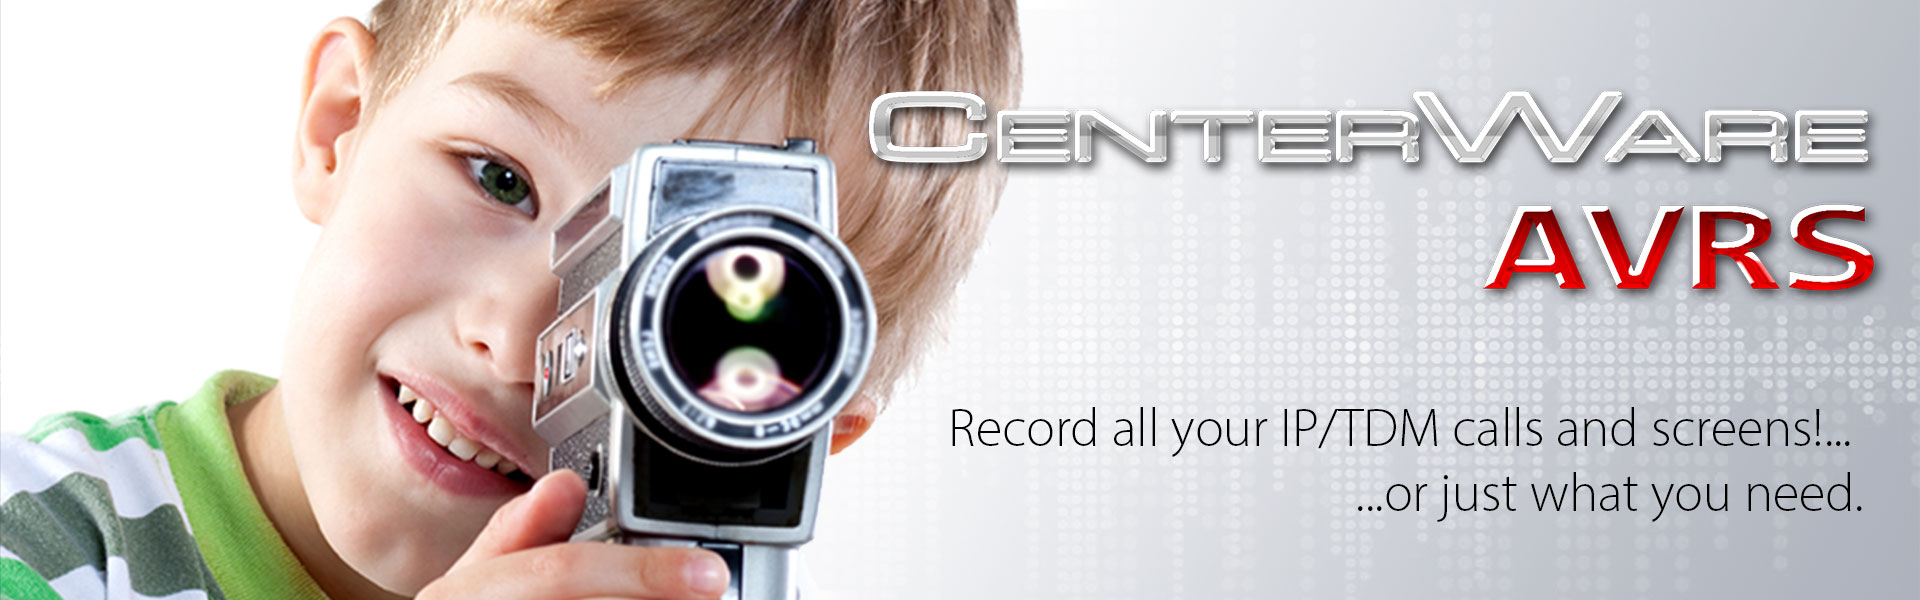 Contact Center Call and Screen Recording